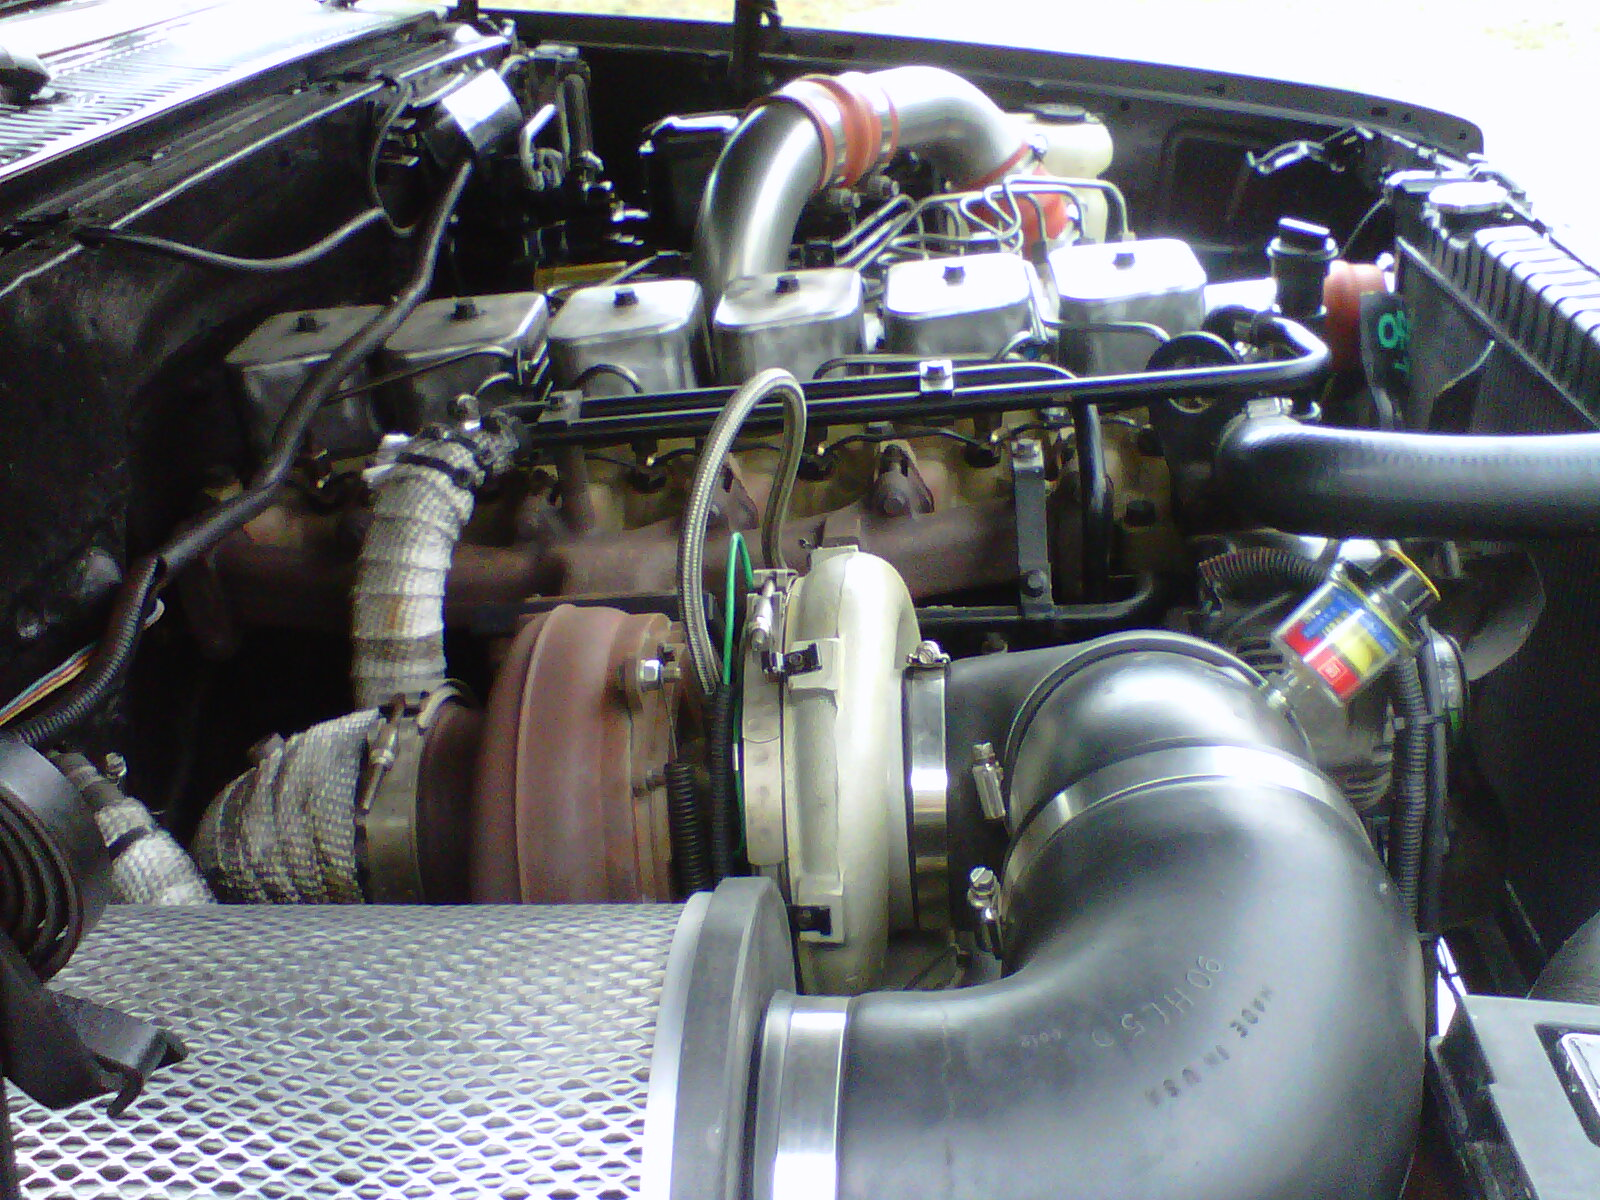 Show Off Your 12 Valves From 1st Gen To 2nd Gen Lets See